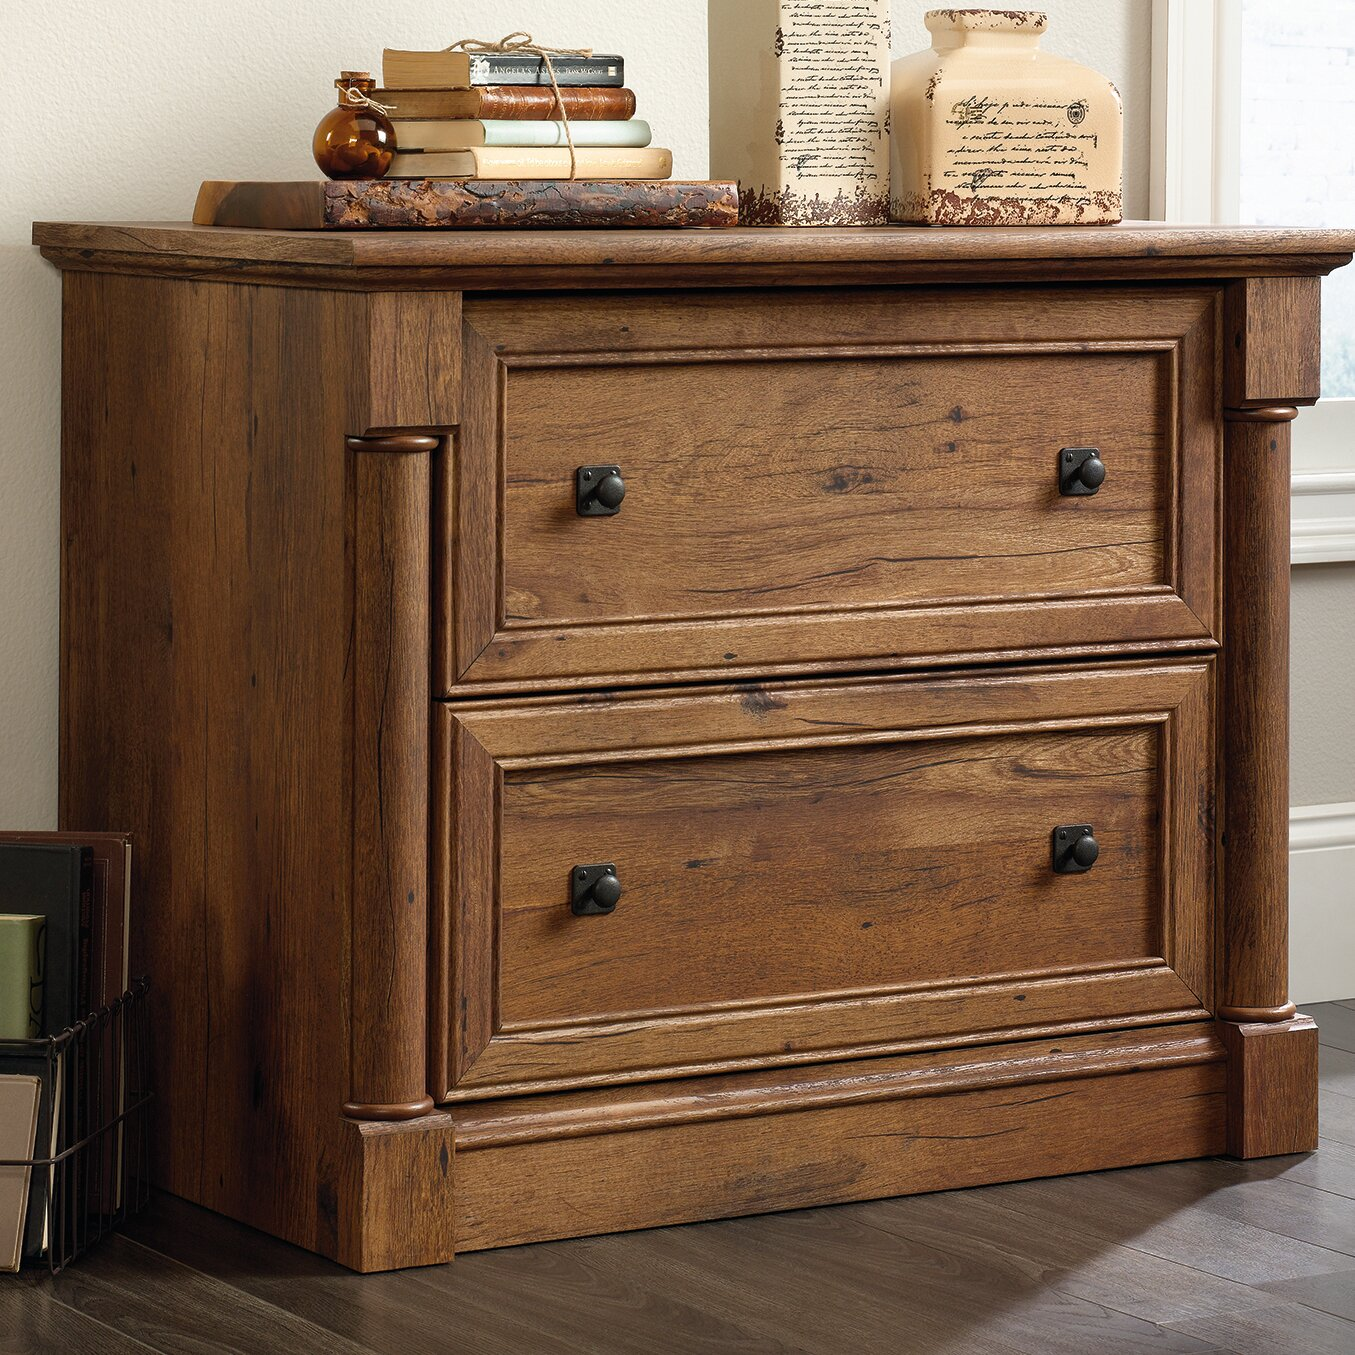 Wood Lateral File Cabinet 2 Drawer Darby Home Co Sagers 2 Drawer Lateral Filing Cabinet Reviews